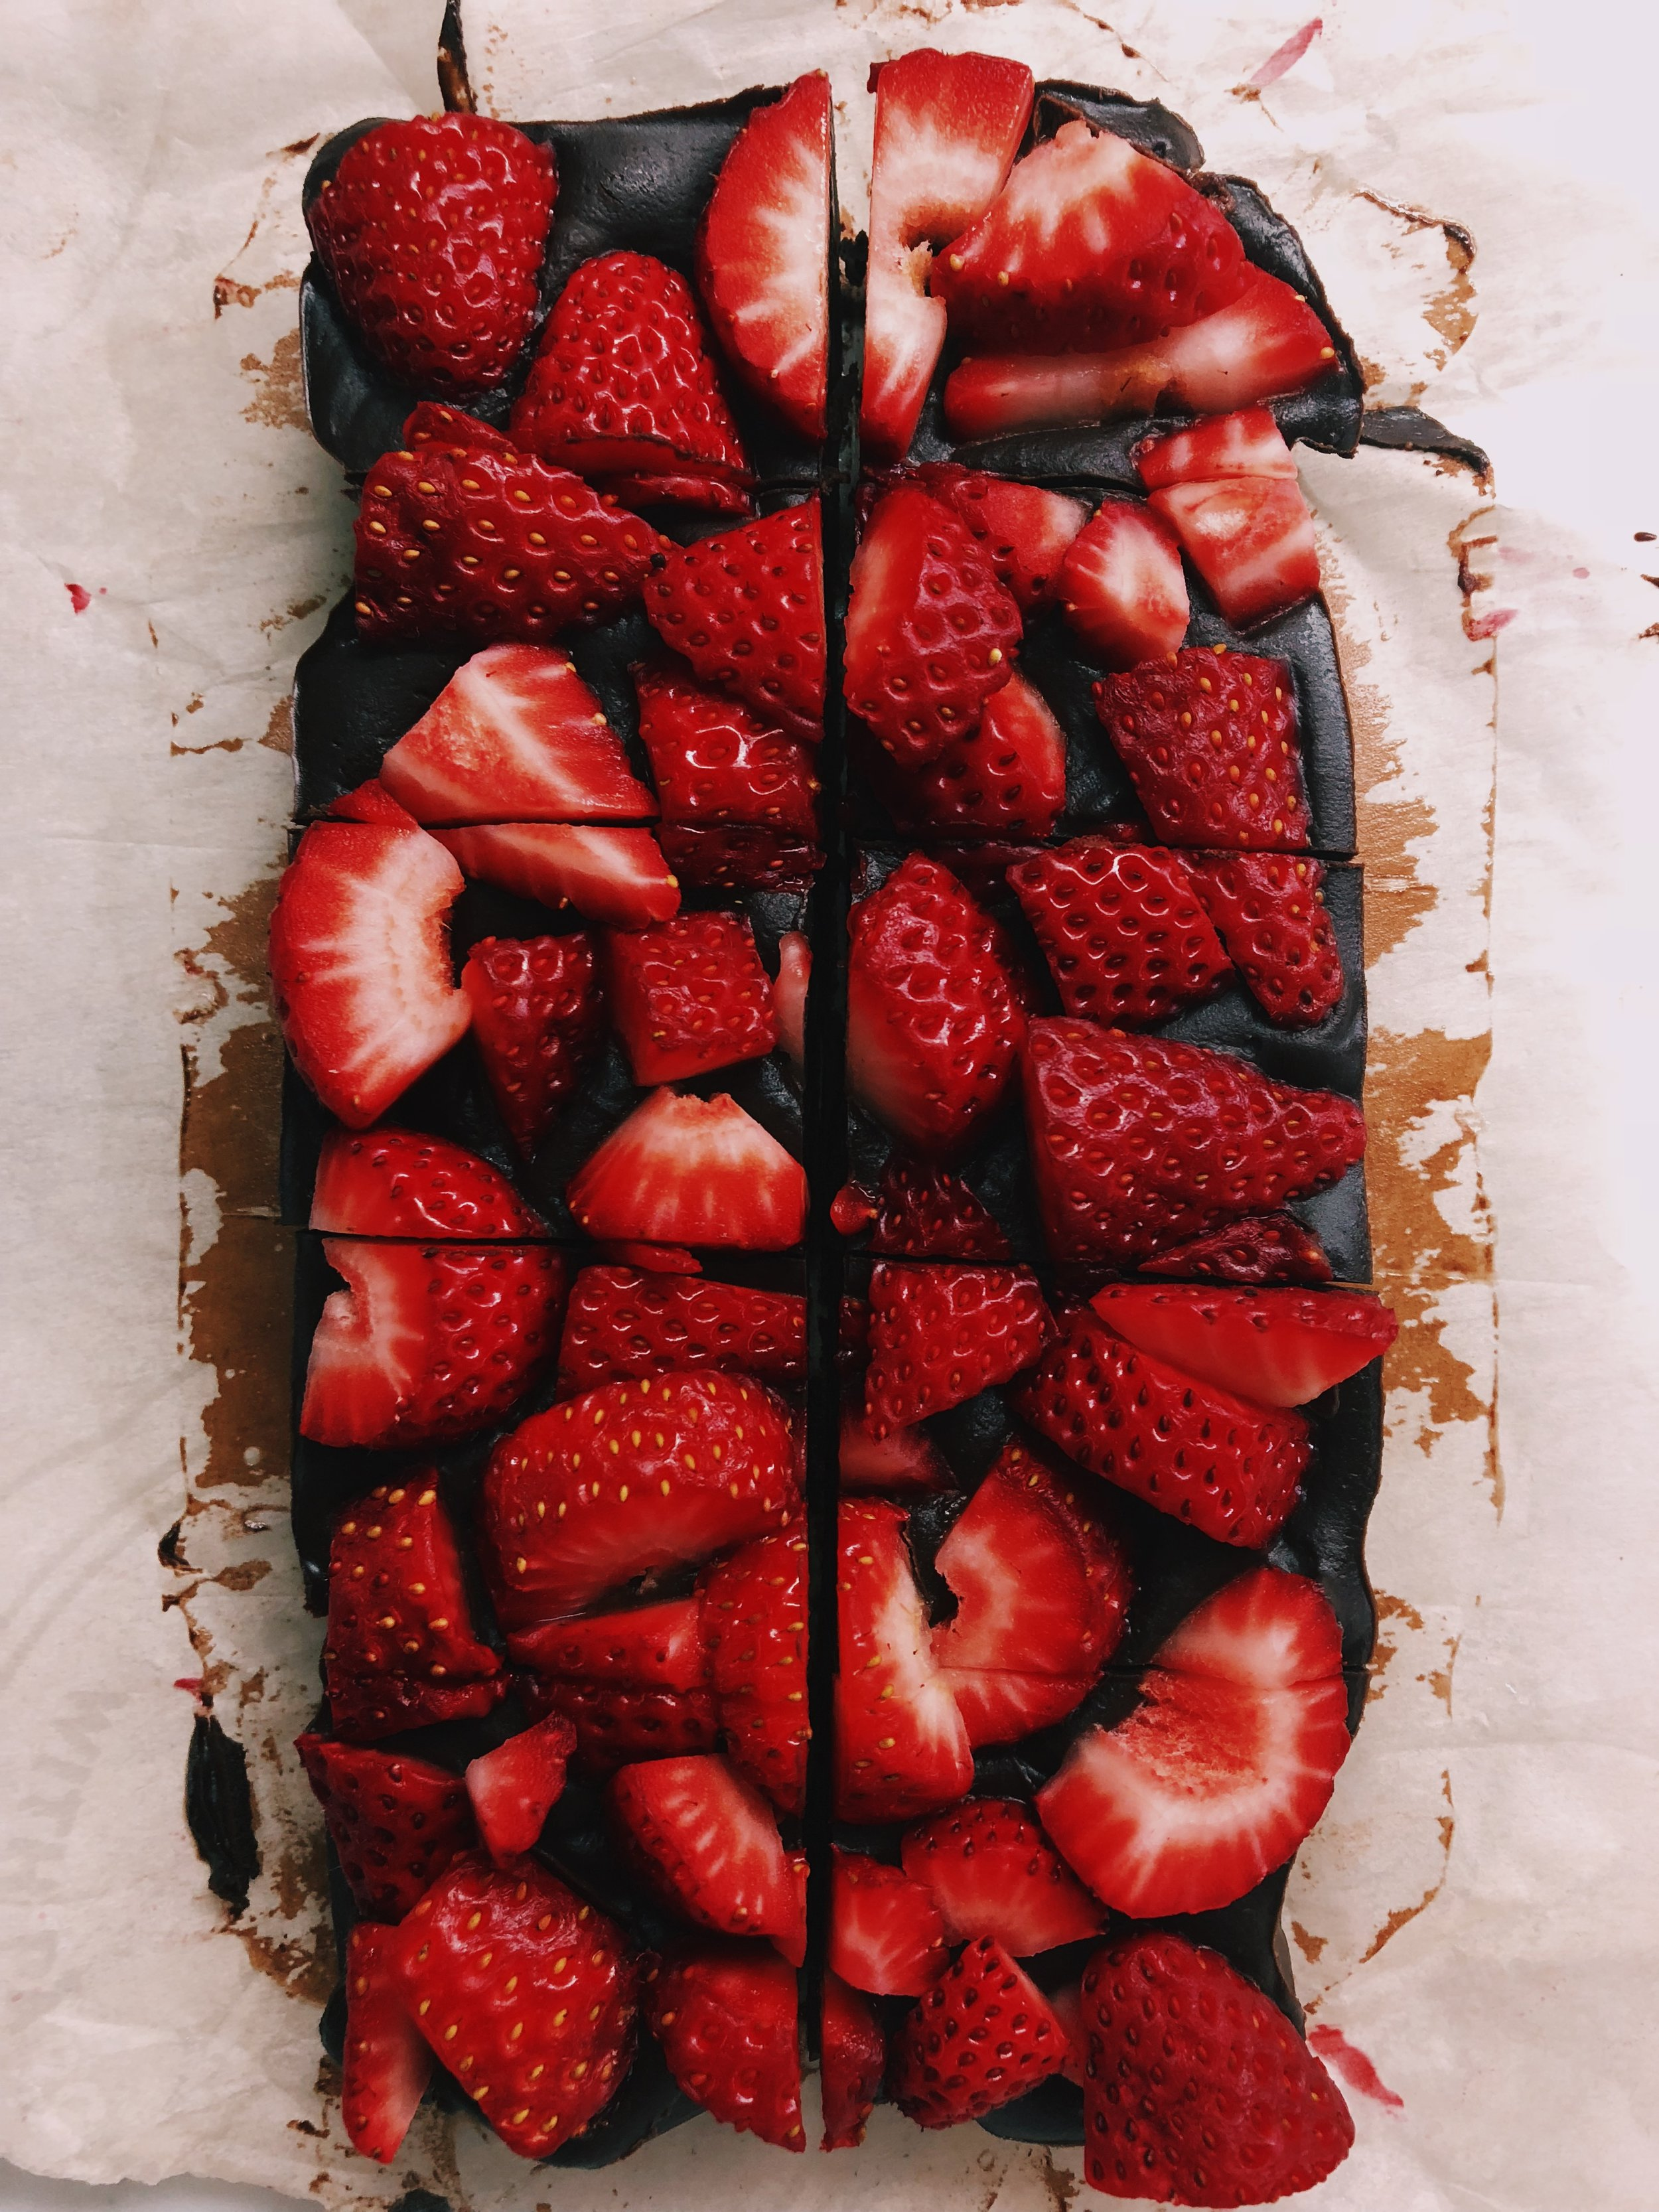 CBD STRAWBERRY PEANUT BUTTER FUDGE - INGREDIENTS⠀1/3 cup coconut oil⠀1/4 tsp salt⠀3/4 cup Santa Barbara Chocolate cacao⠀1/3 cup maple syrup⠀3/4 cup Georgia Grinders creamy peanut butter1/2 tb Cap Beauty Daily